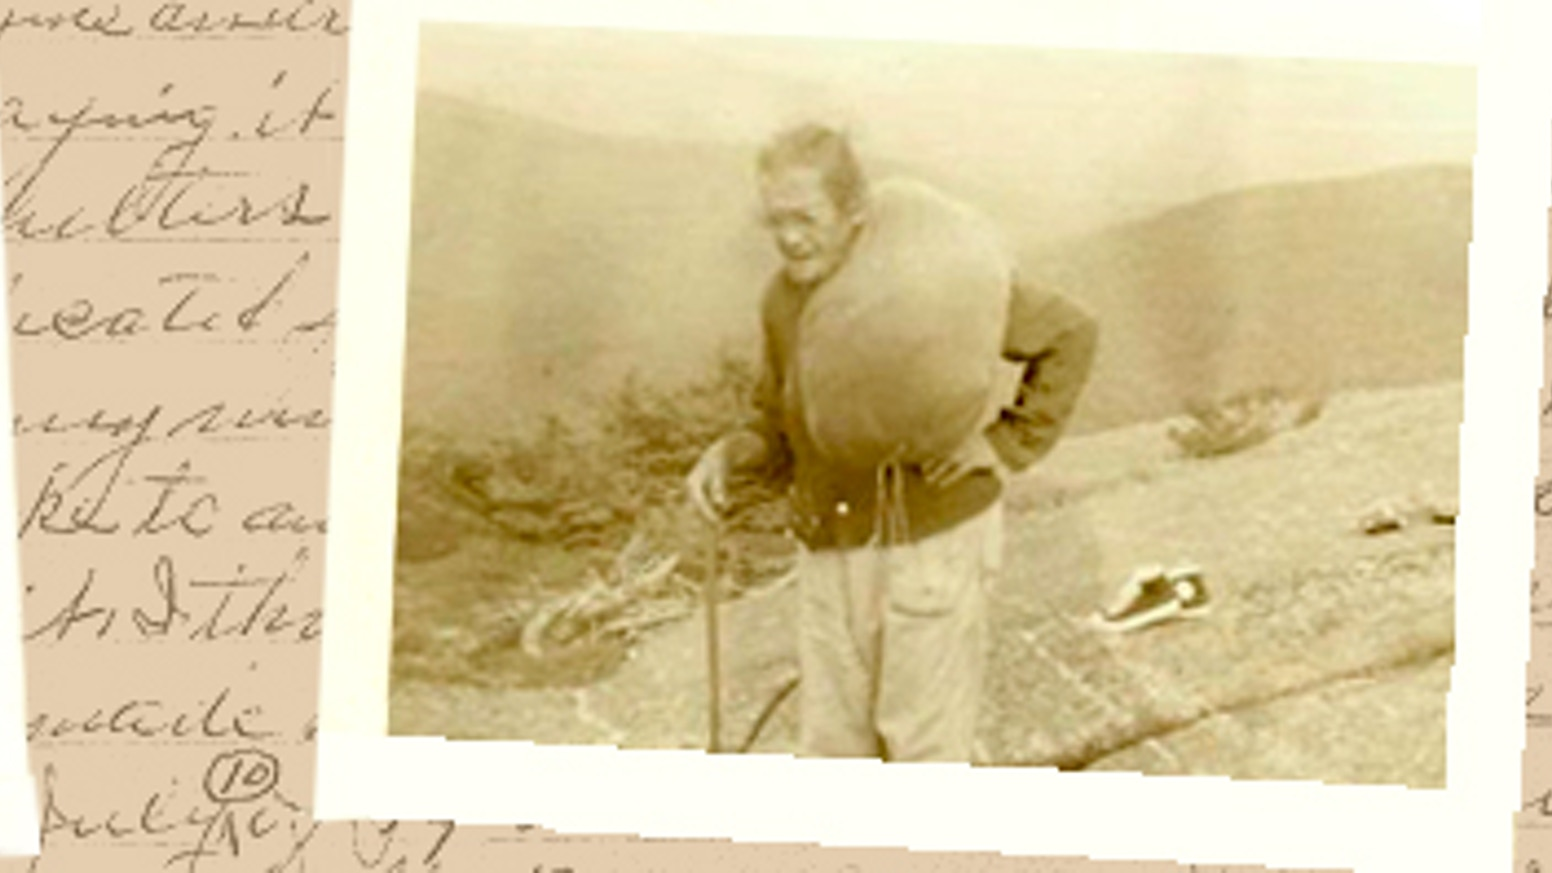 On September 25, 1955, 67 year old Emma Gatewood who became the first woman to solo thru-hike the Appalachian Trail!